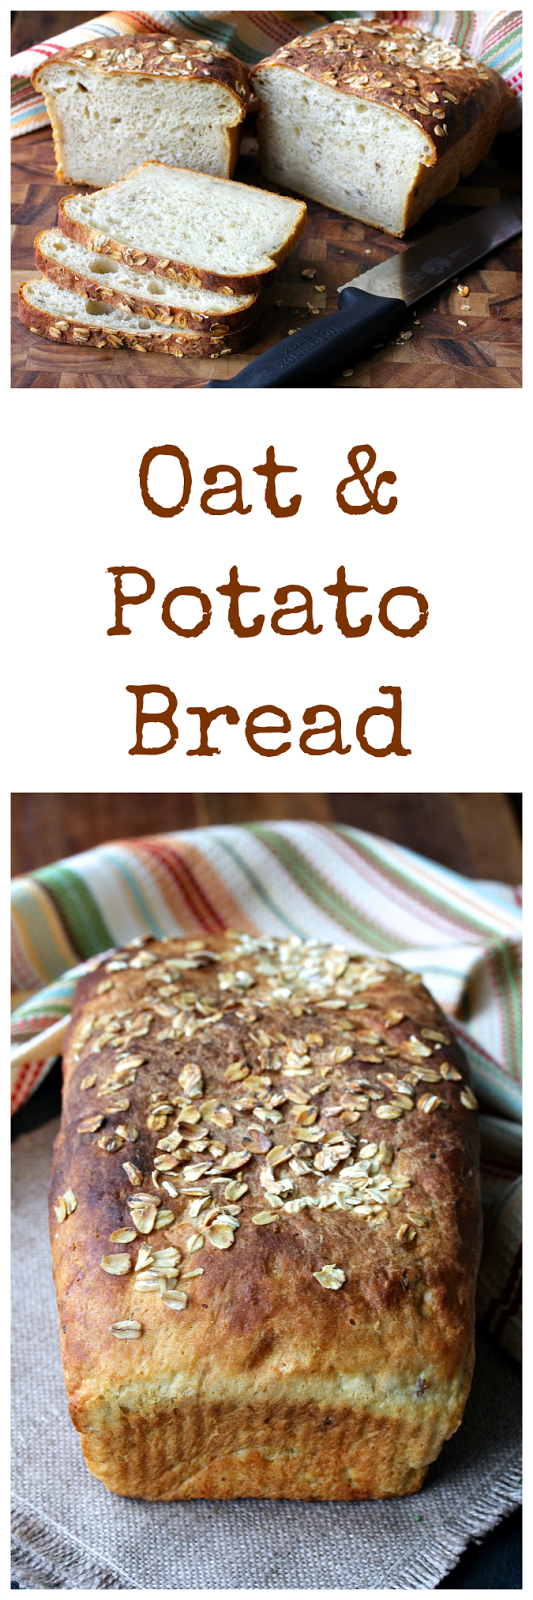 This Oat and Potato Bread uses freshly boiled potatoes or leftover mashed potatoes to add so much moistness and flavor.